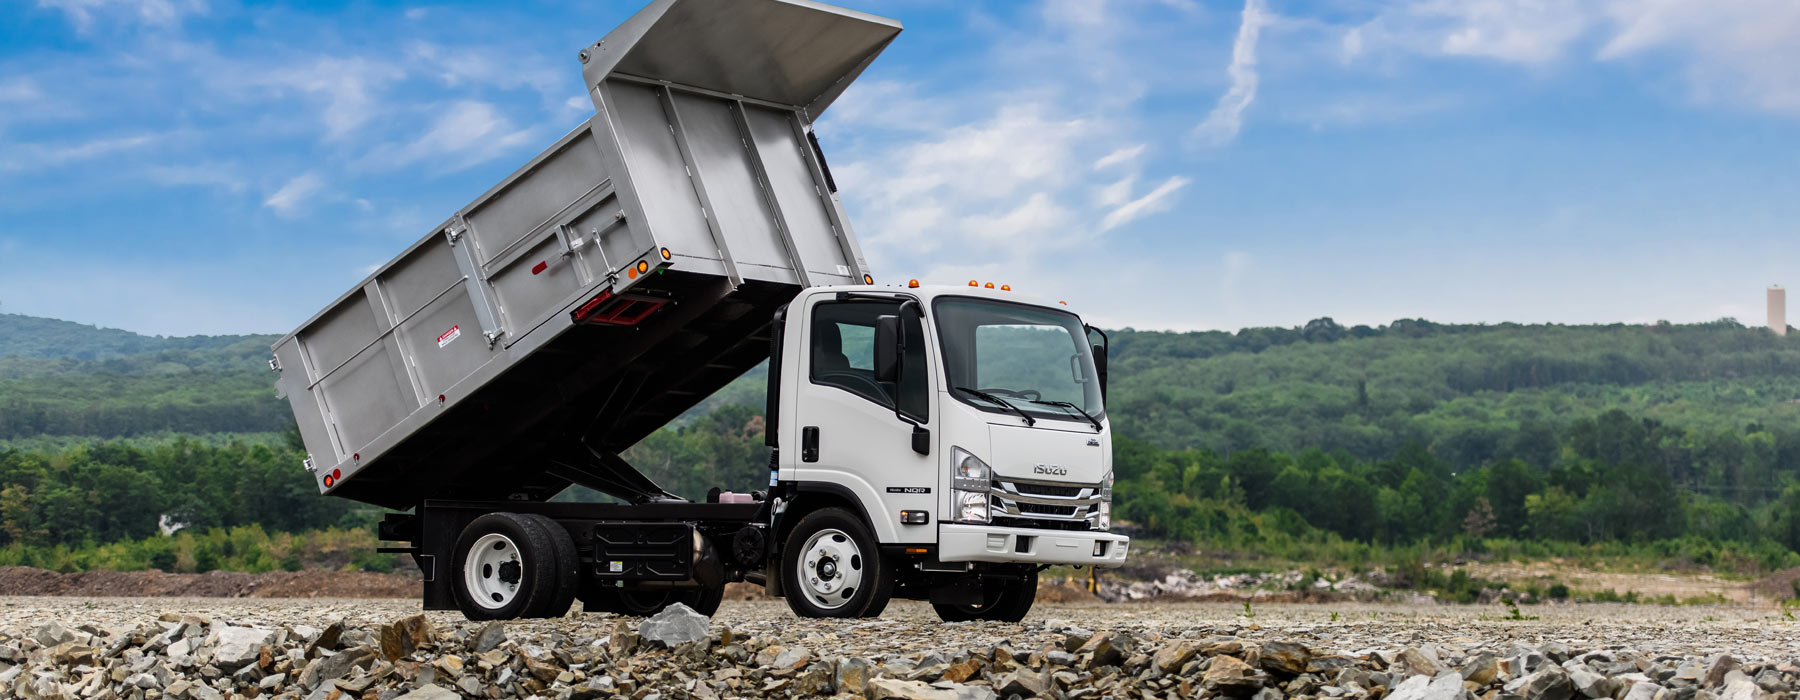 Isuzu Medium Duty Truck